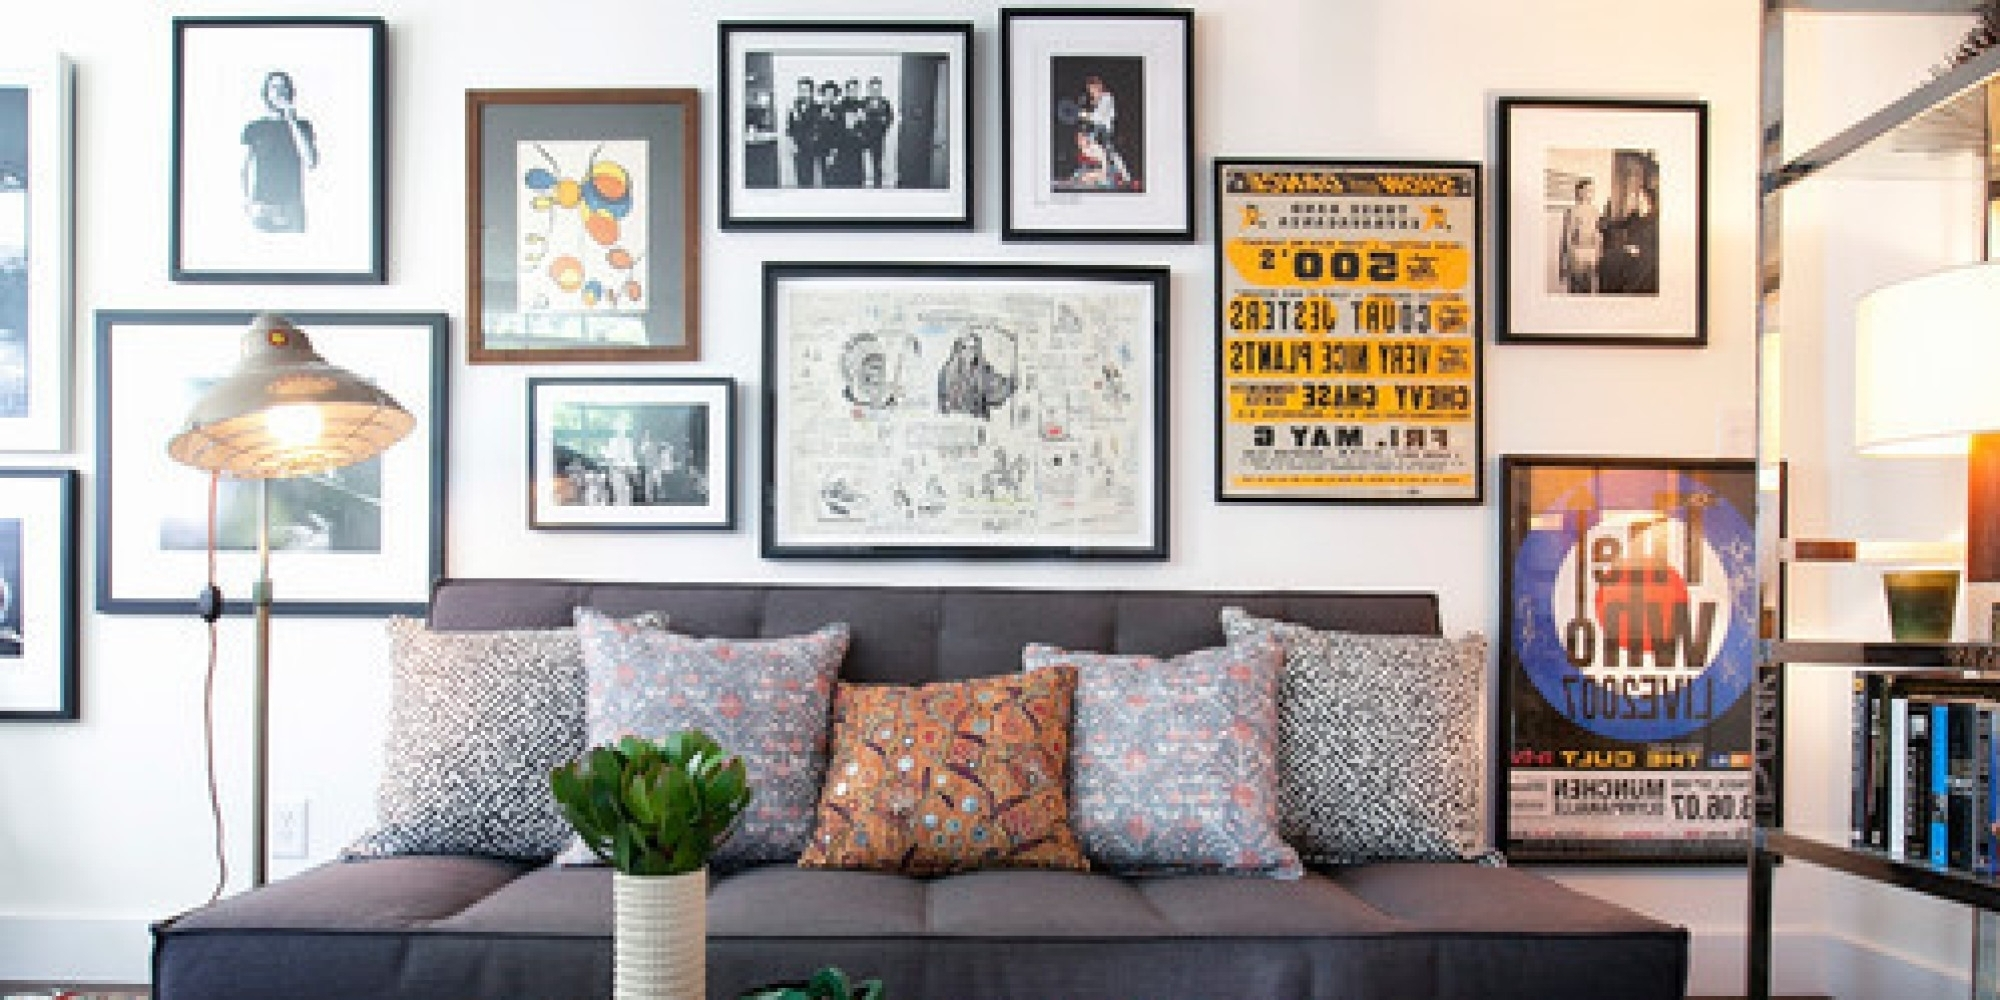 Wall Art Collage Houzz | Creative Ideas Inside Most Current Houzz Abstract Wall Art (Gallery 2 of 20)